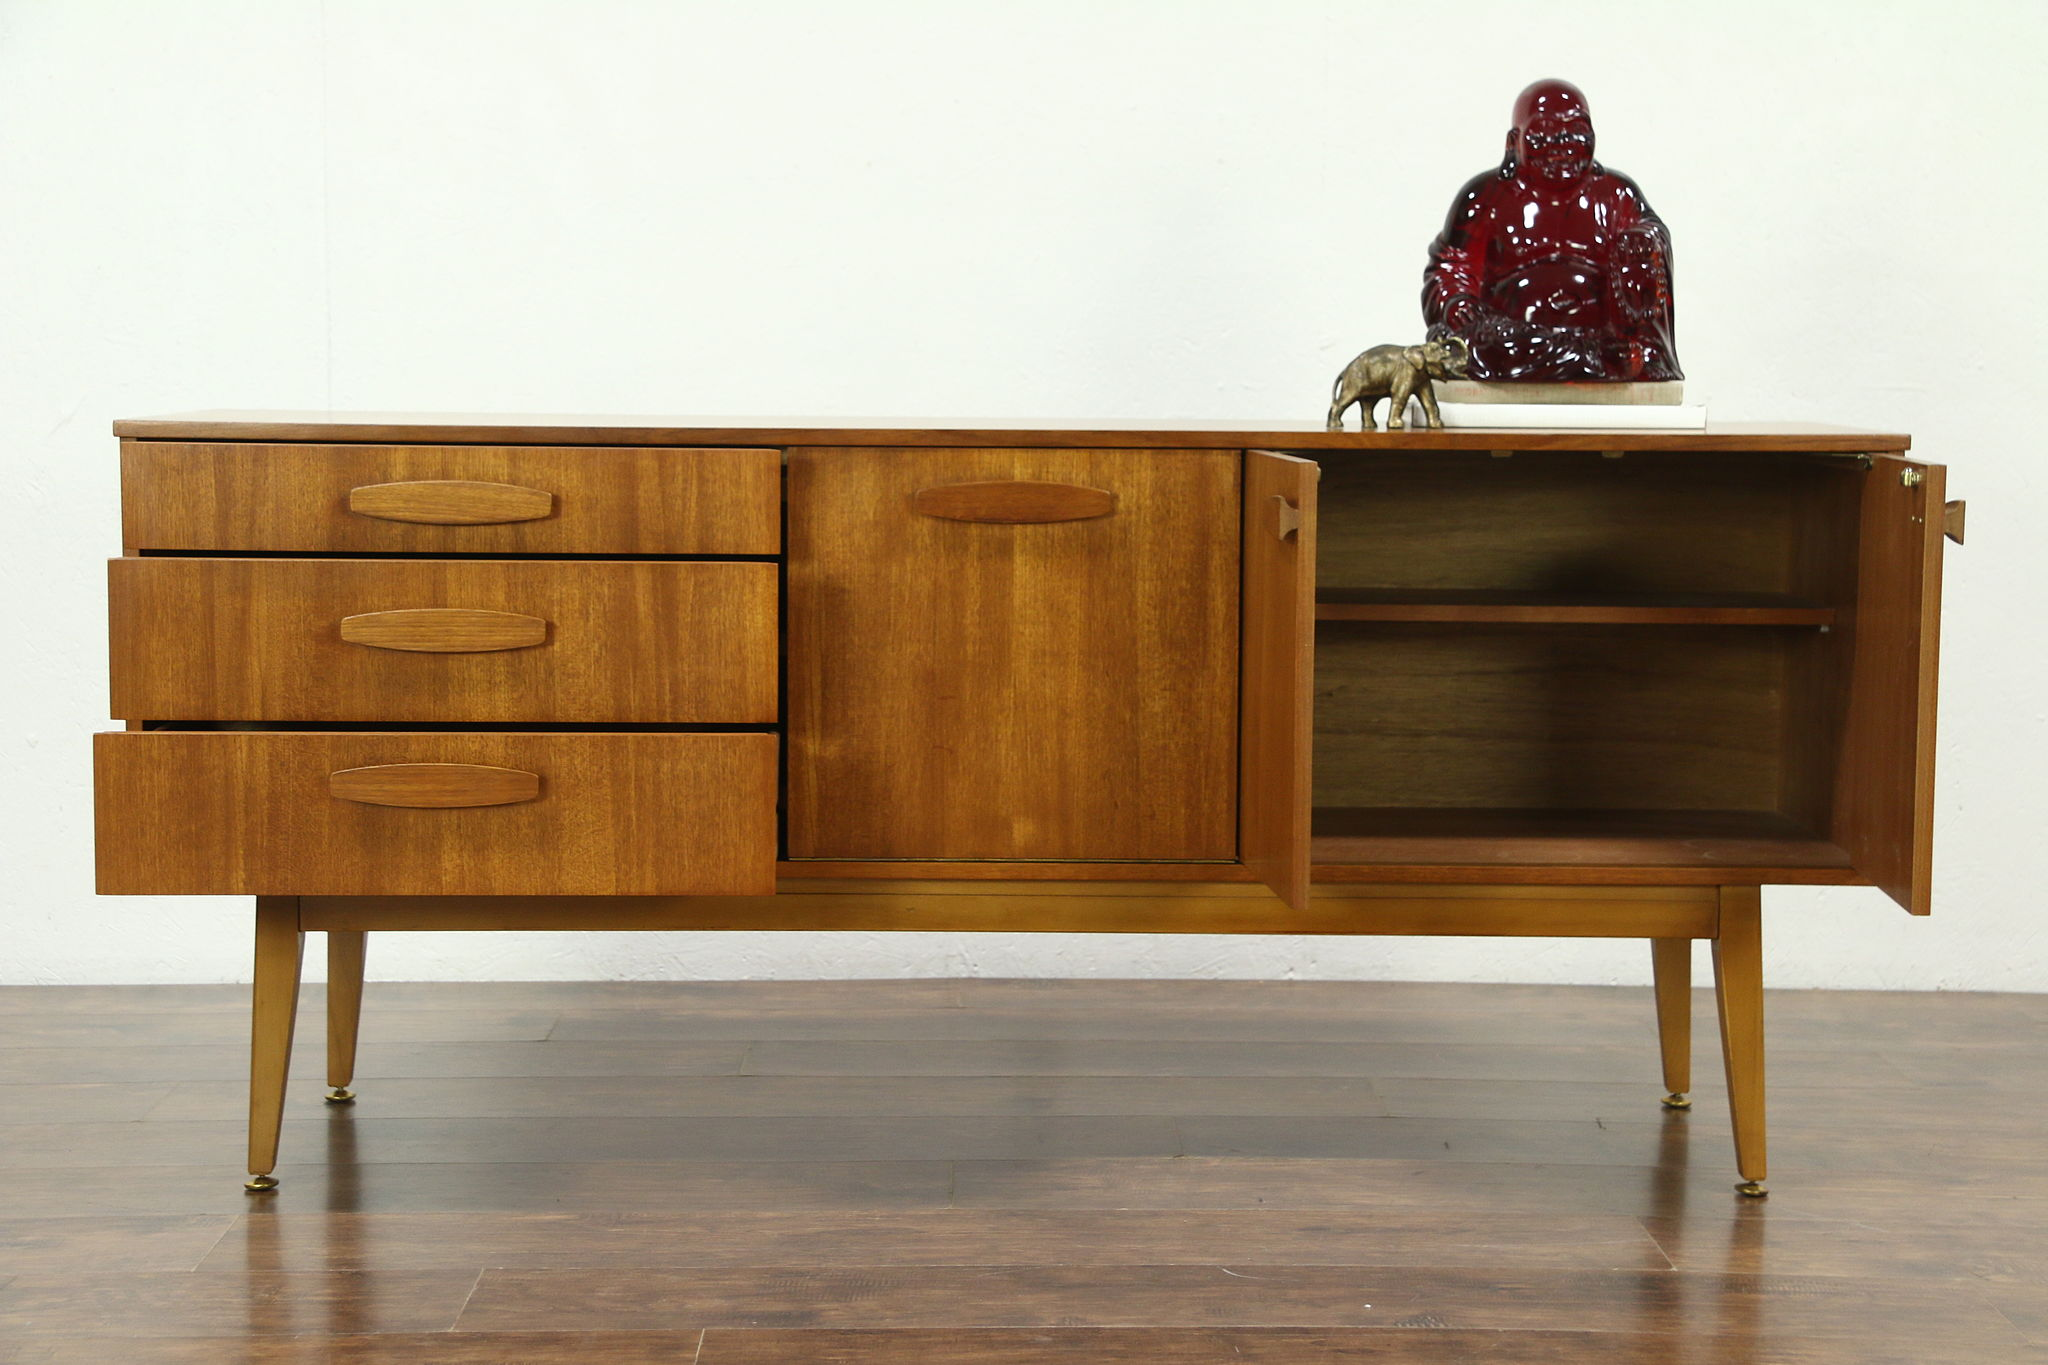 ntcd the danish century bar i recovered cabinet too pin needs be this have in credenza just but modern mine blonde mid to couch